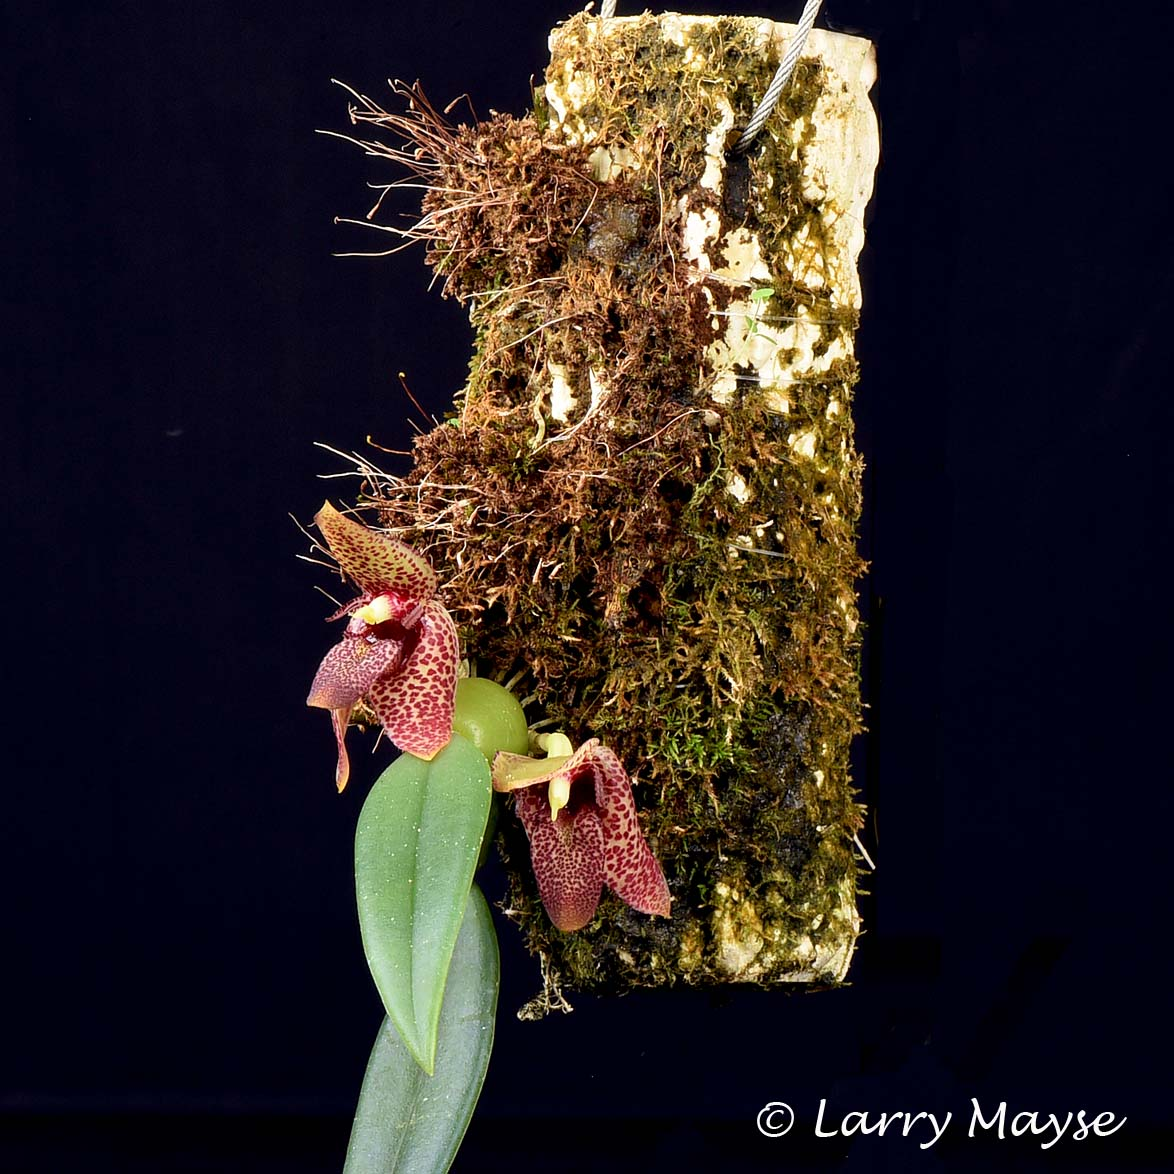 Bulbophyllum disciflorum